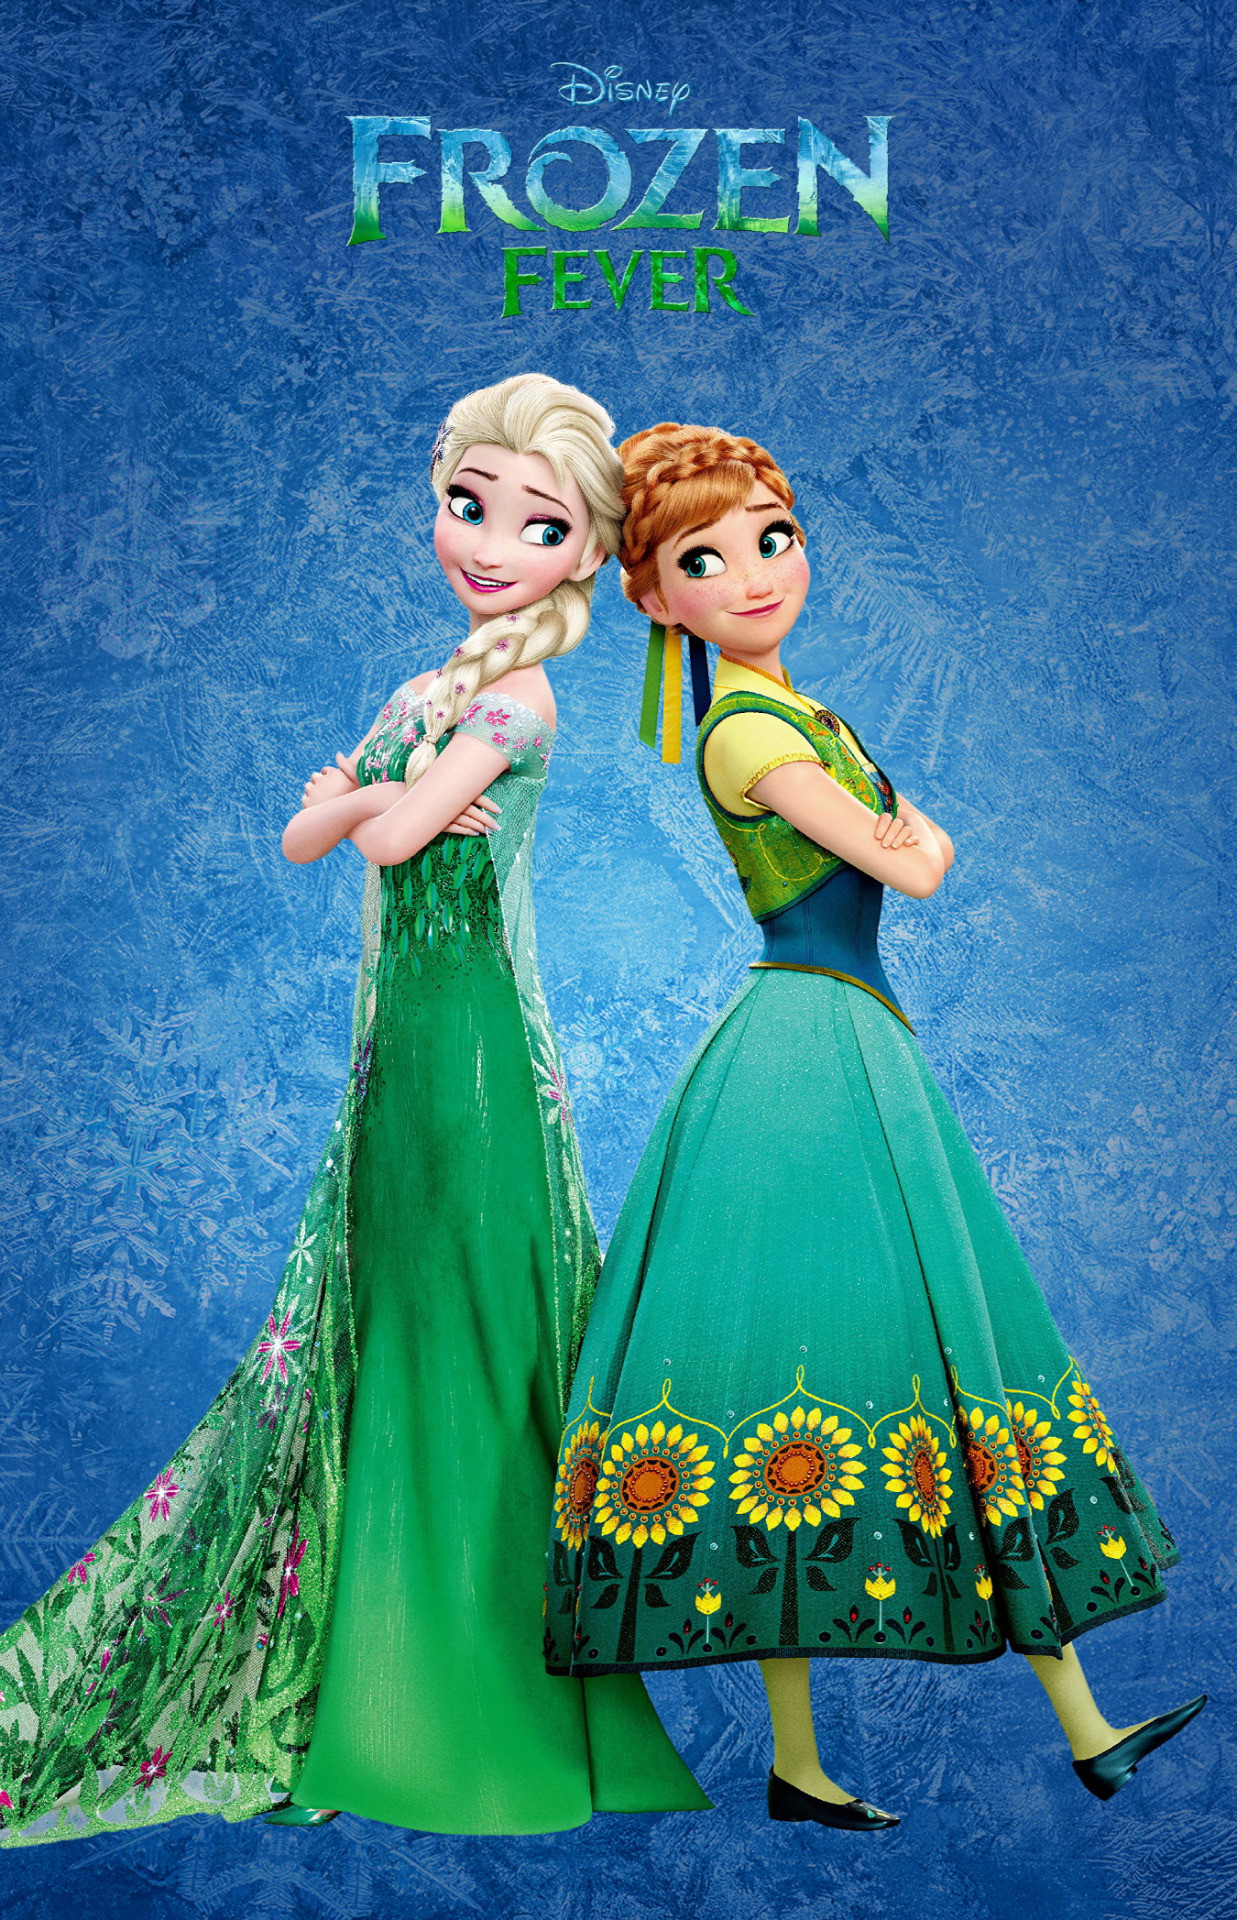 1237x1920 Day 13: My favorite outfit is Elsa's dress from Frozen Fever. I love the